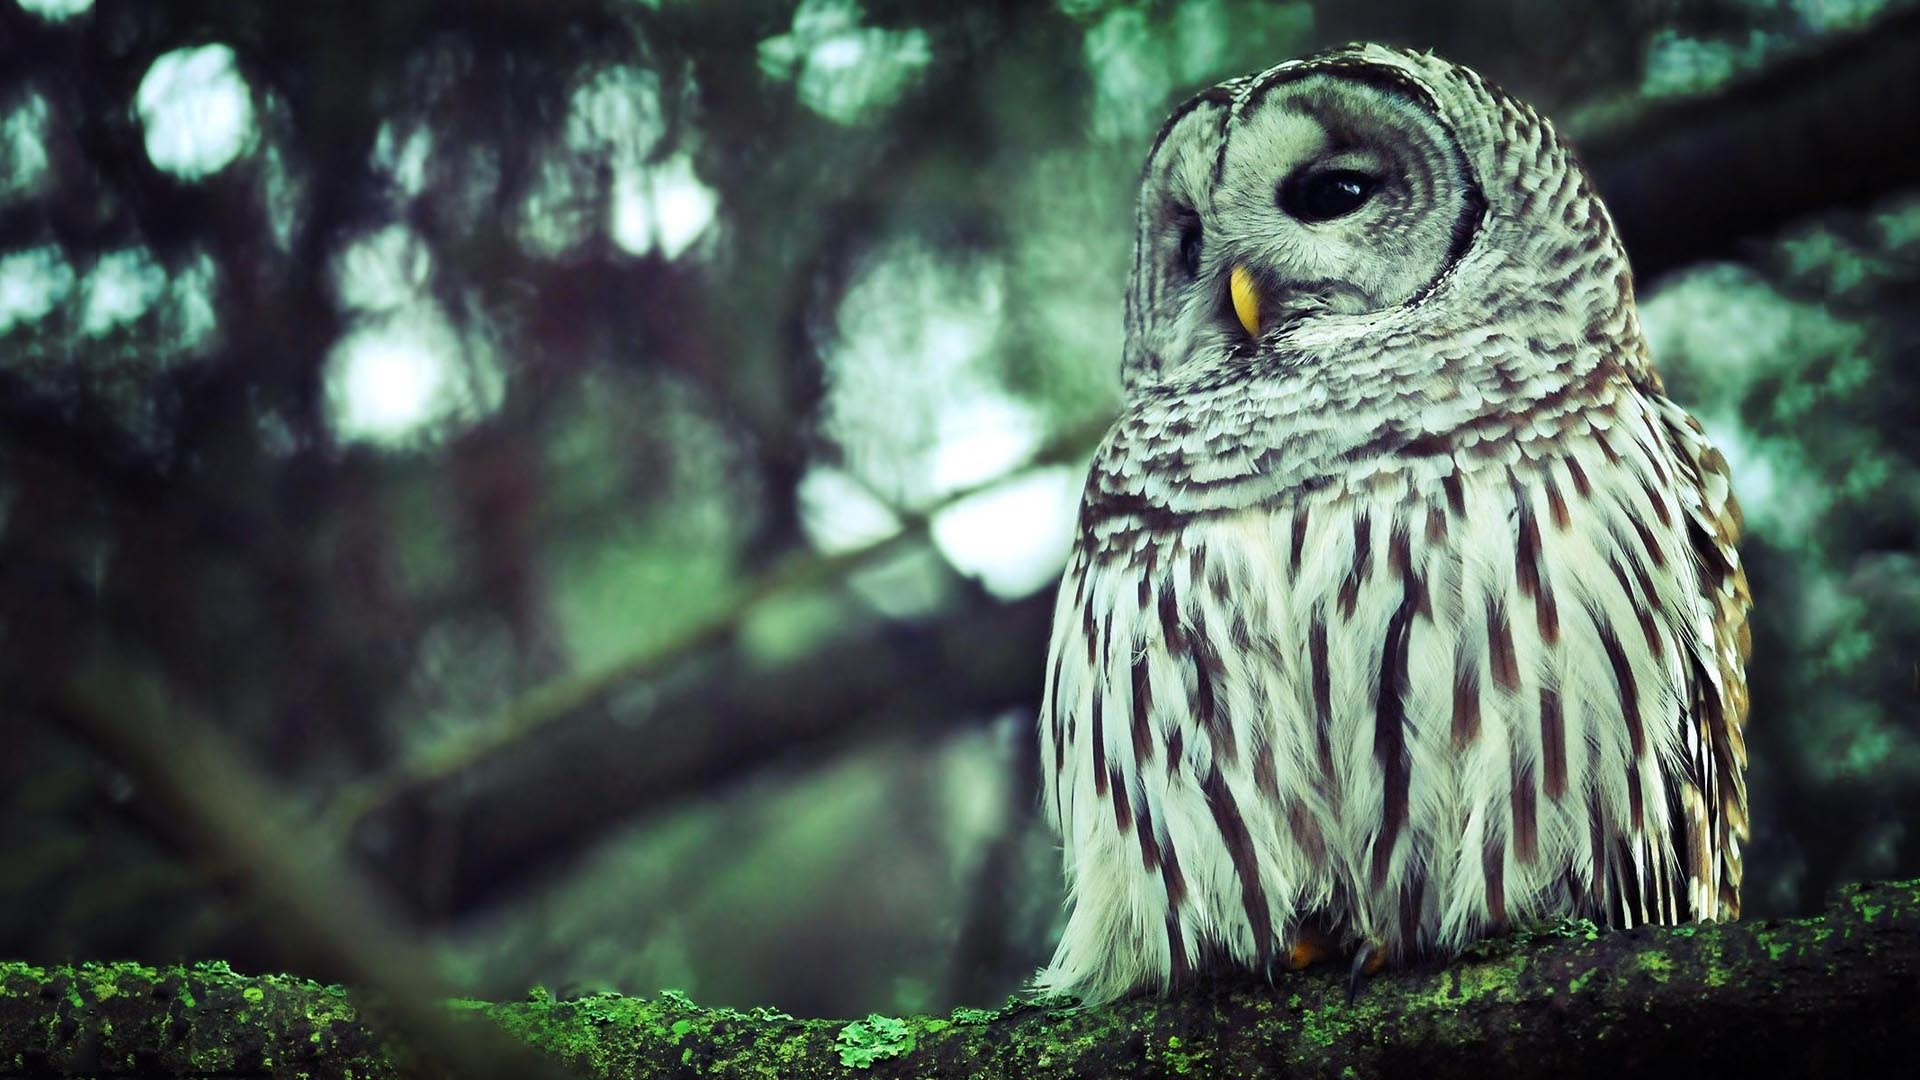 176930 426253 Baby-Owl-Wallpaper flyingowl-278701 ...